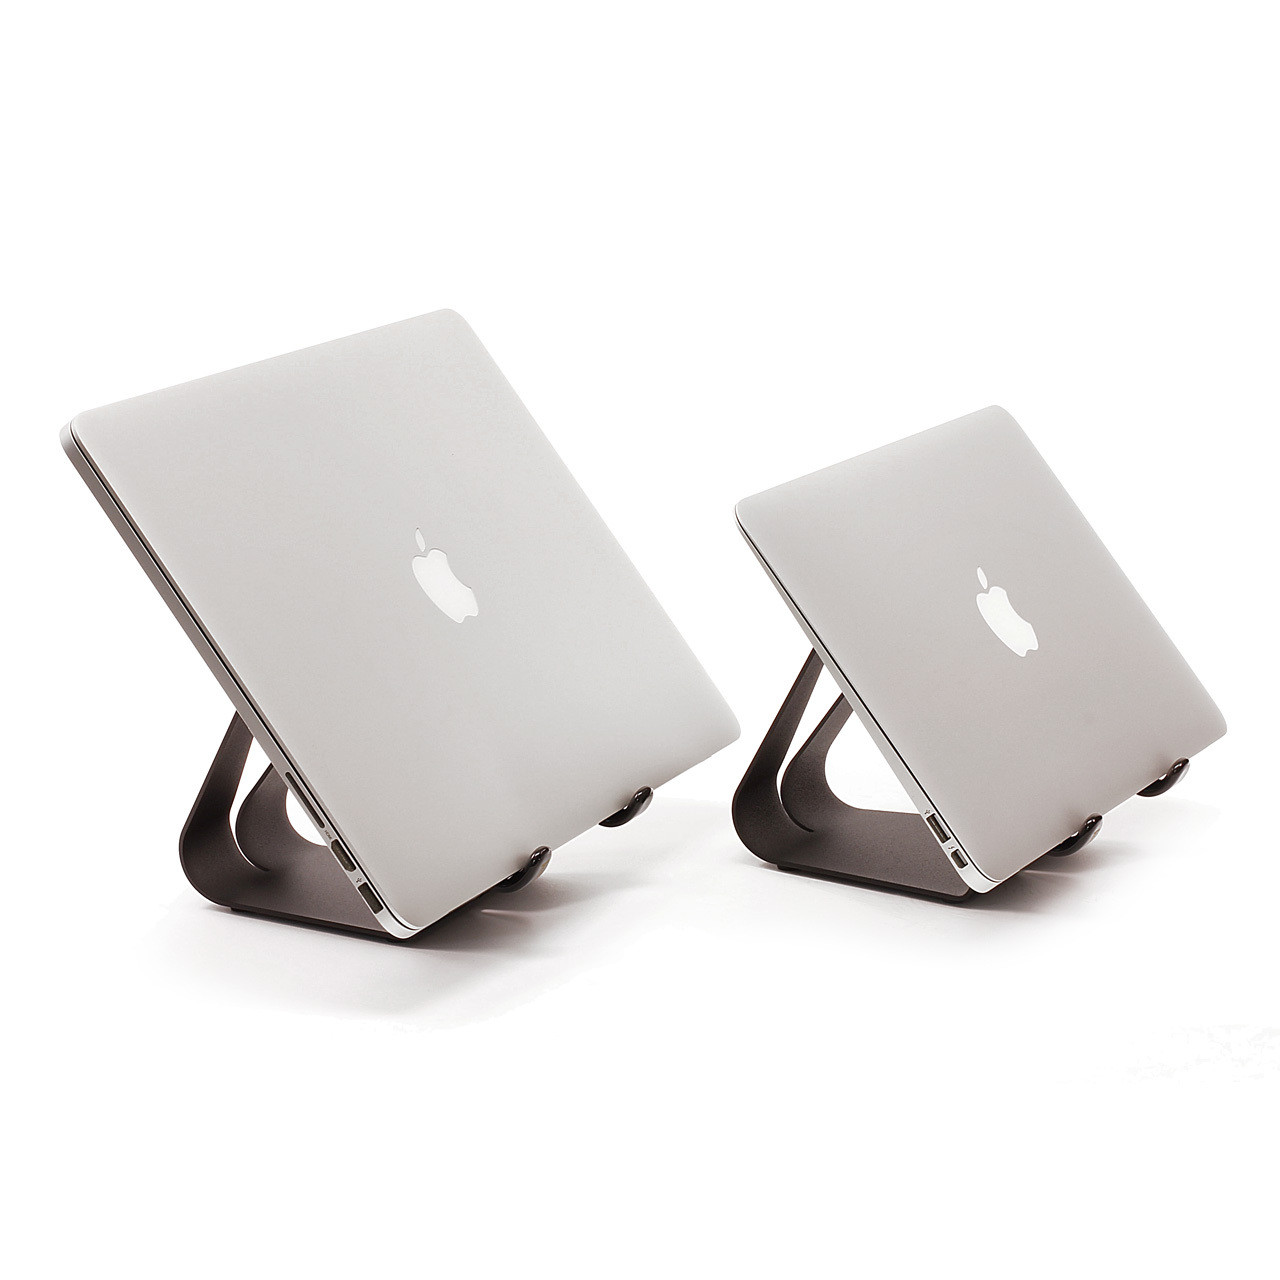 Laptop stand for external monitor use